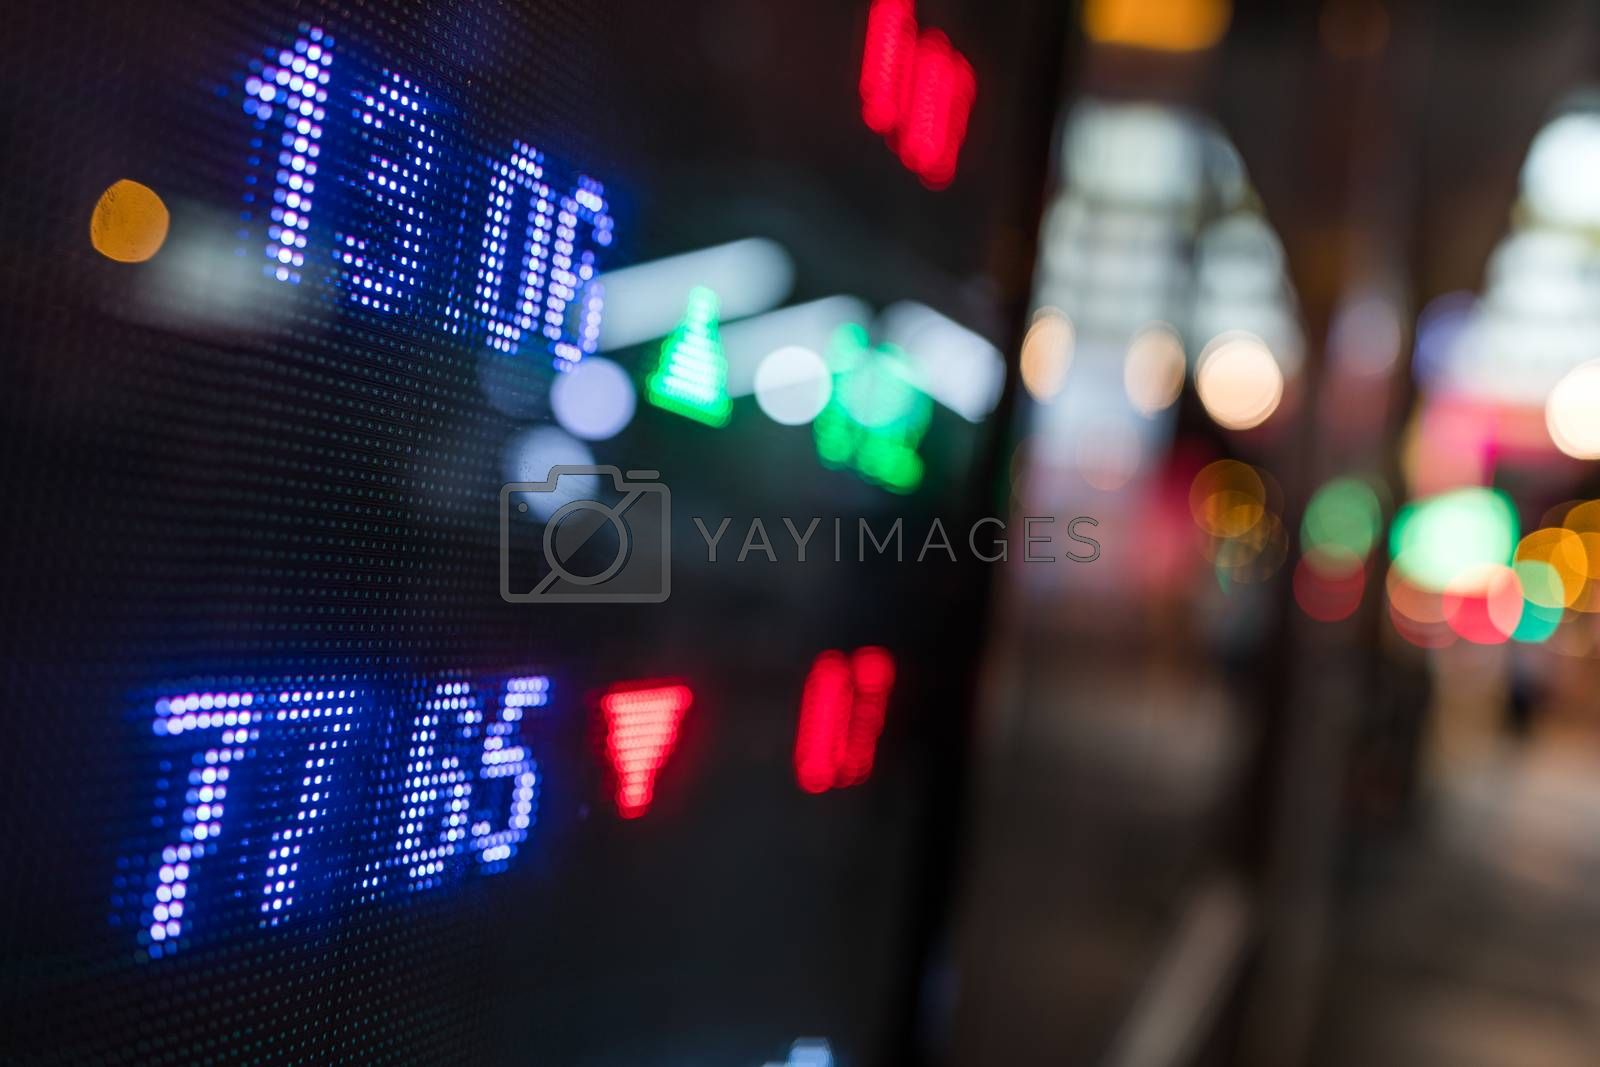 Stock market price display in the city at night